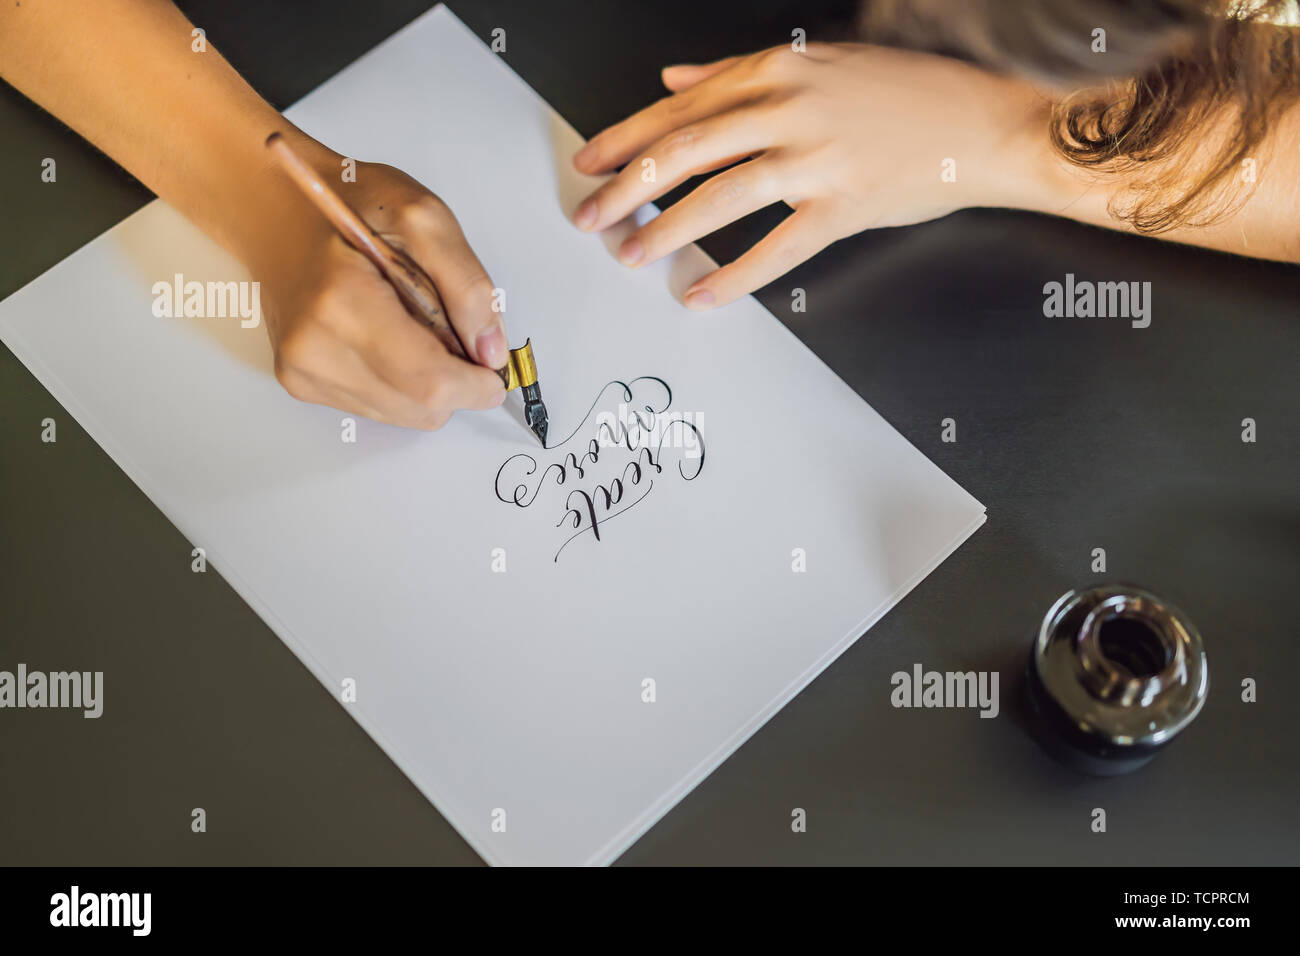 Creat more. Calligrapher Young Woman writes phrase on white paper. Inscribing ornamental decorated letters. Calligraphy, graphic design, lettering - Stock Image